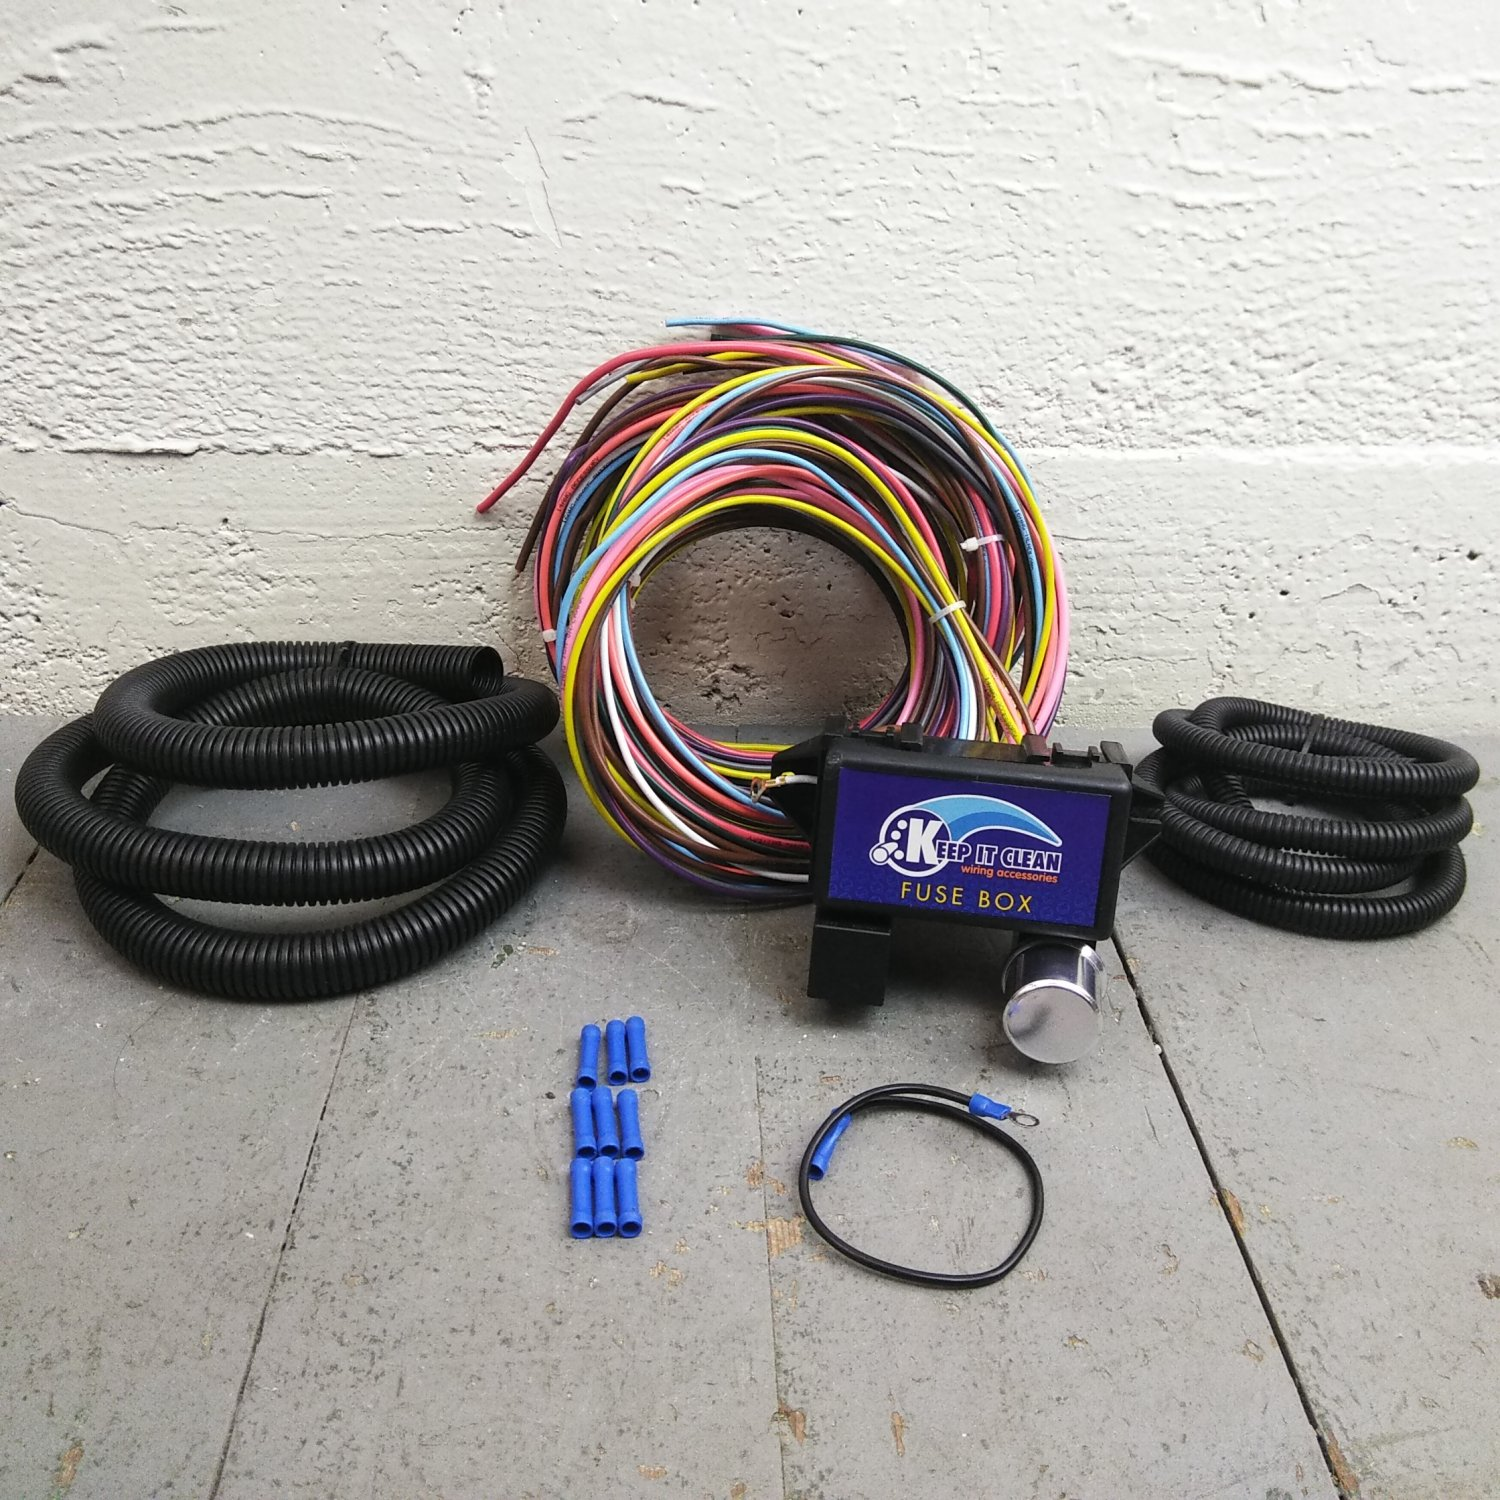 W857527 Wire Harness Parts Best Oem On Wiring Harness Kits For Rat Rod